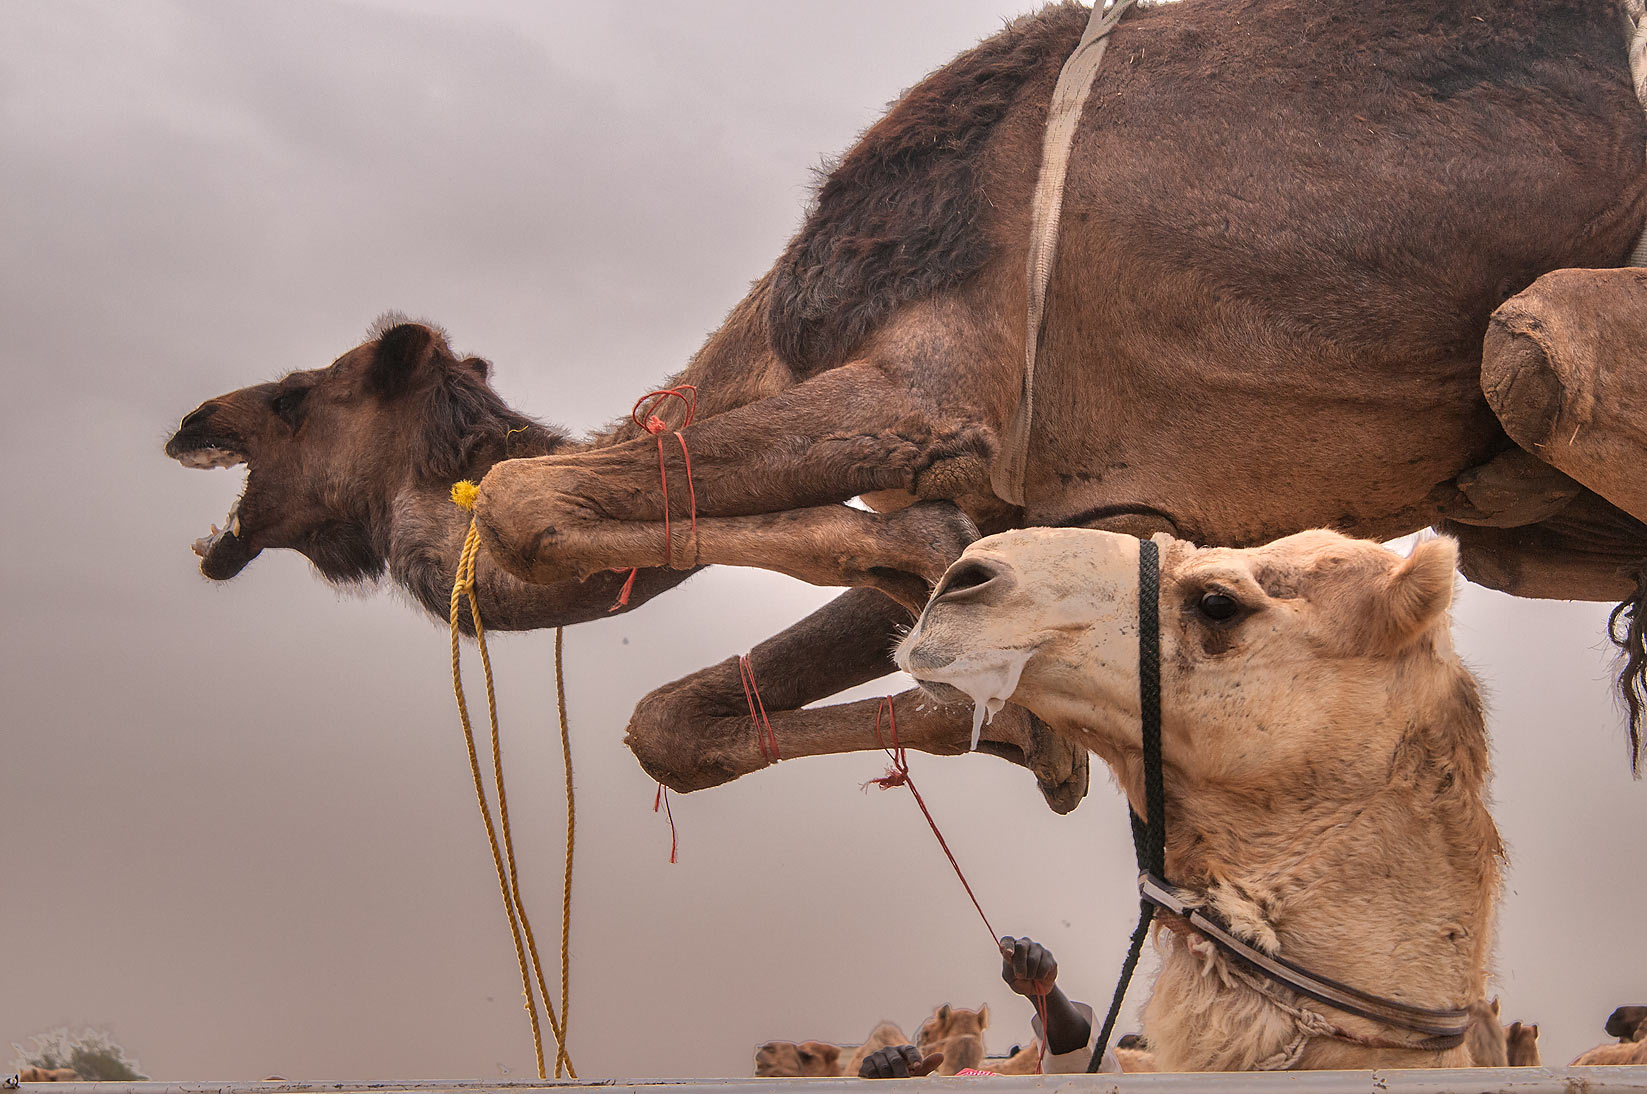 Angry black camel suspended in air by hydraulic...markets, Abu Hamour area. Doha, Qatar